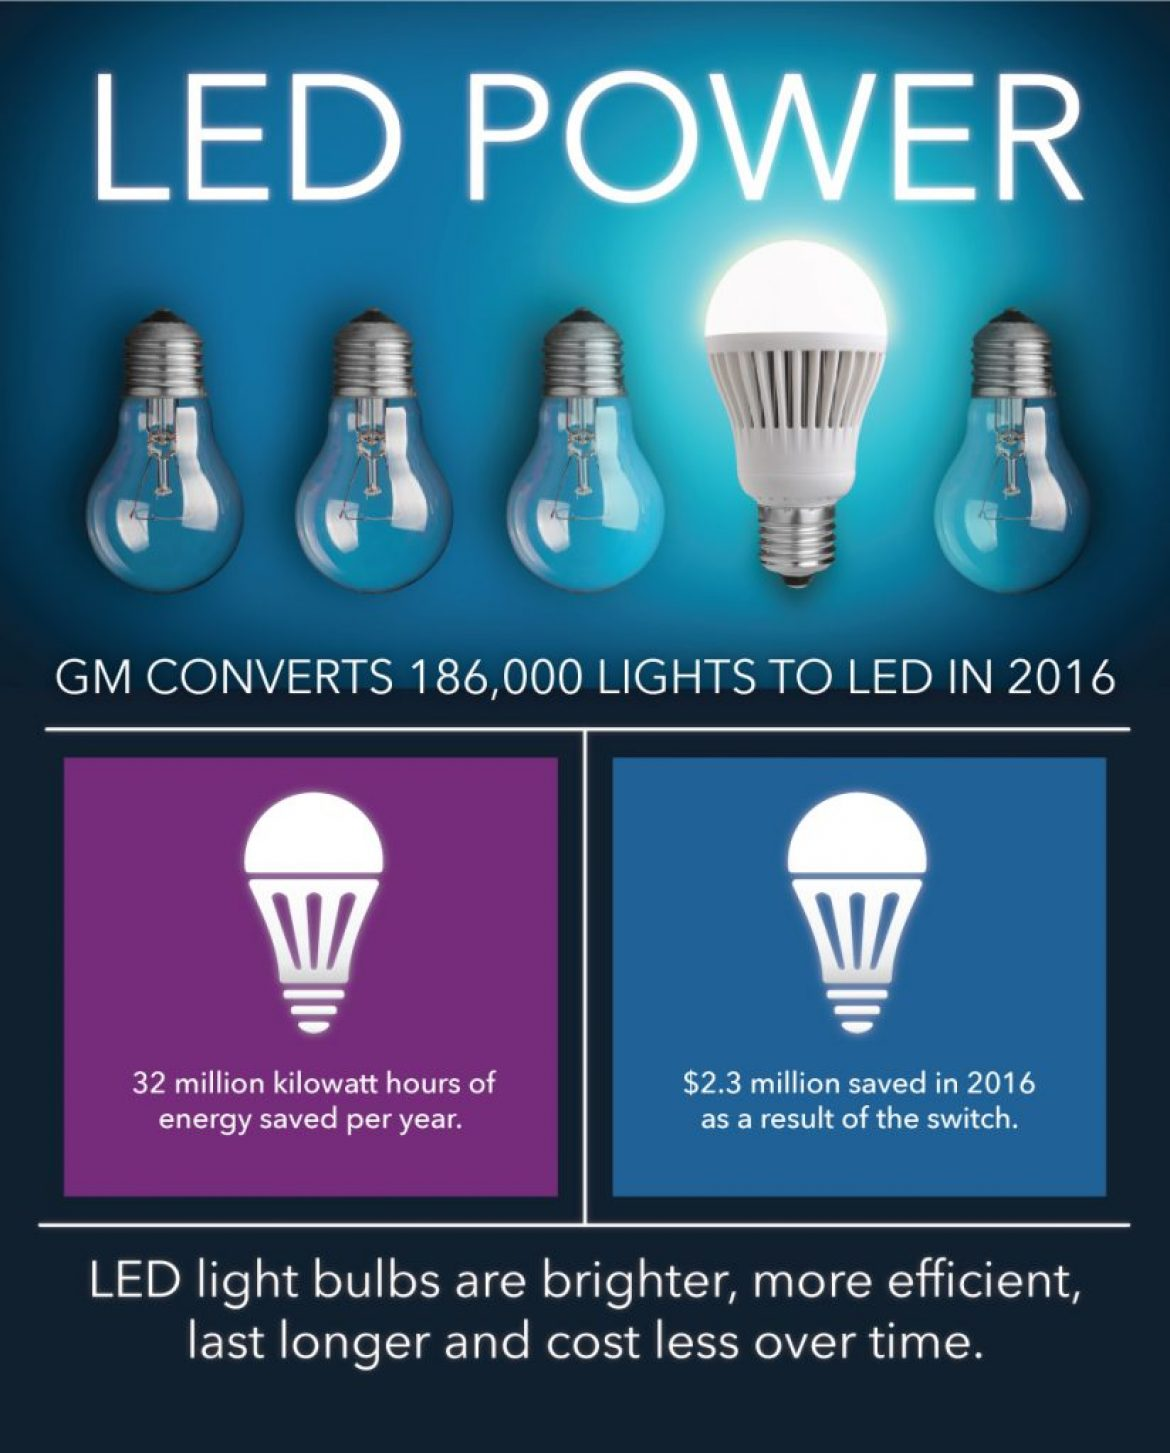 Energy-Efficient Operations Save GM $73 Million in 2016